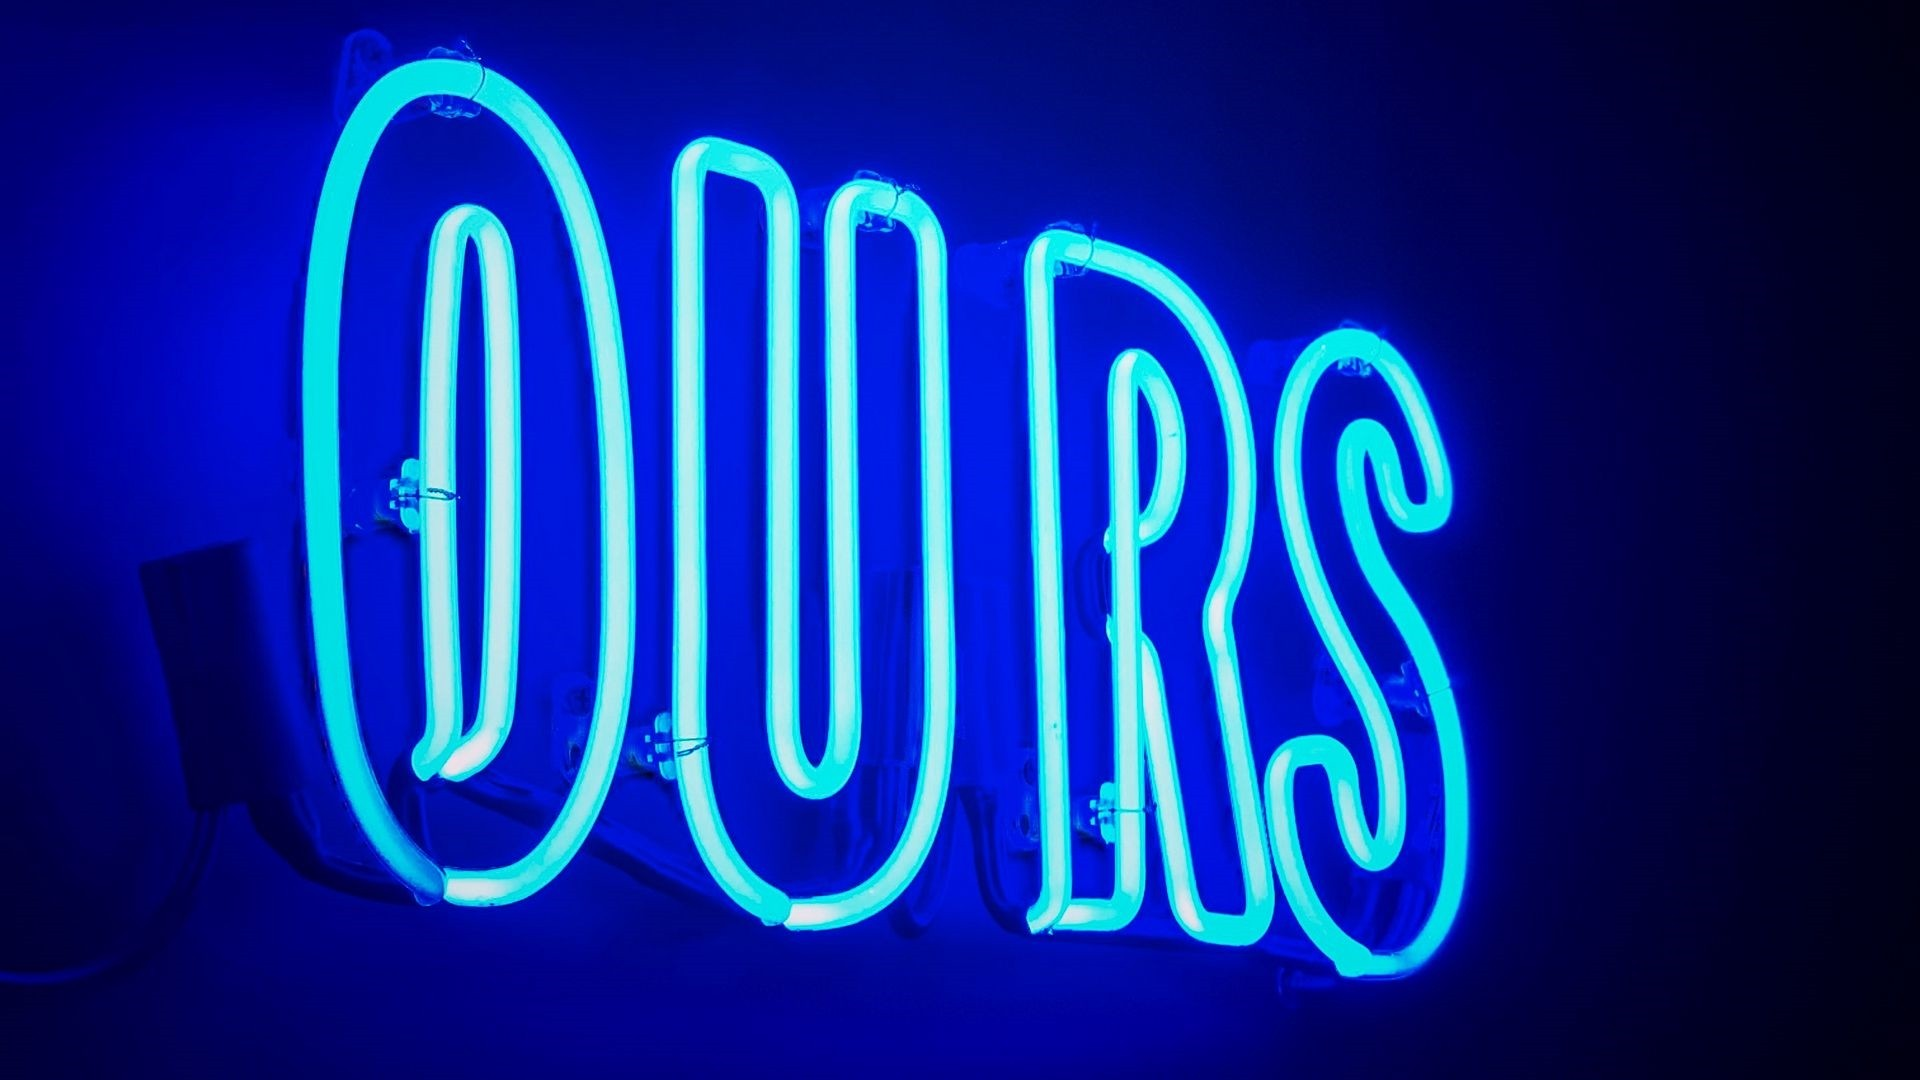 Neon Sign Wallpaper for pc